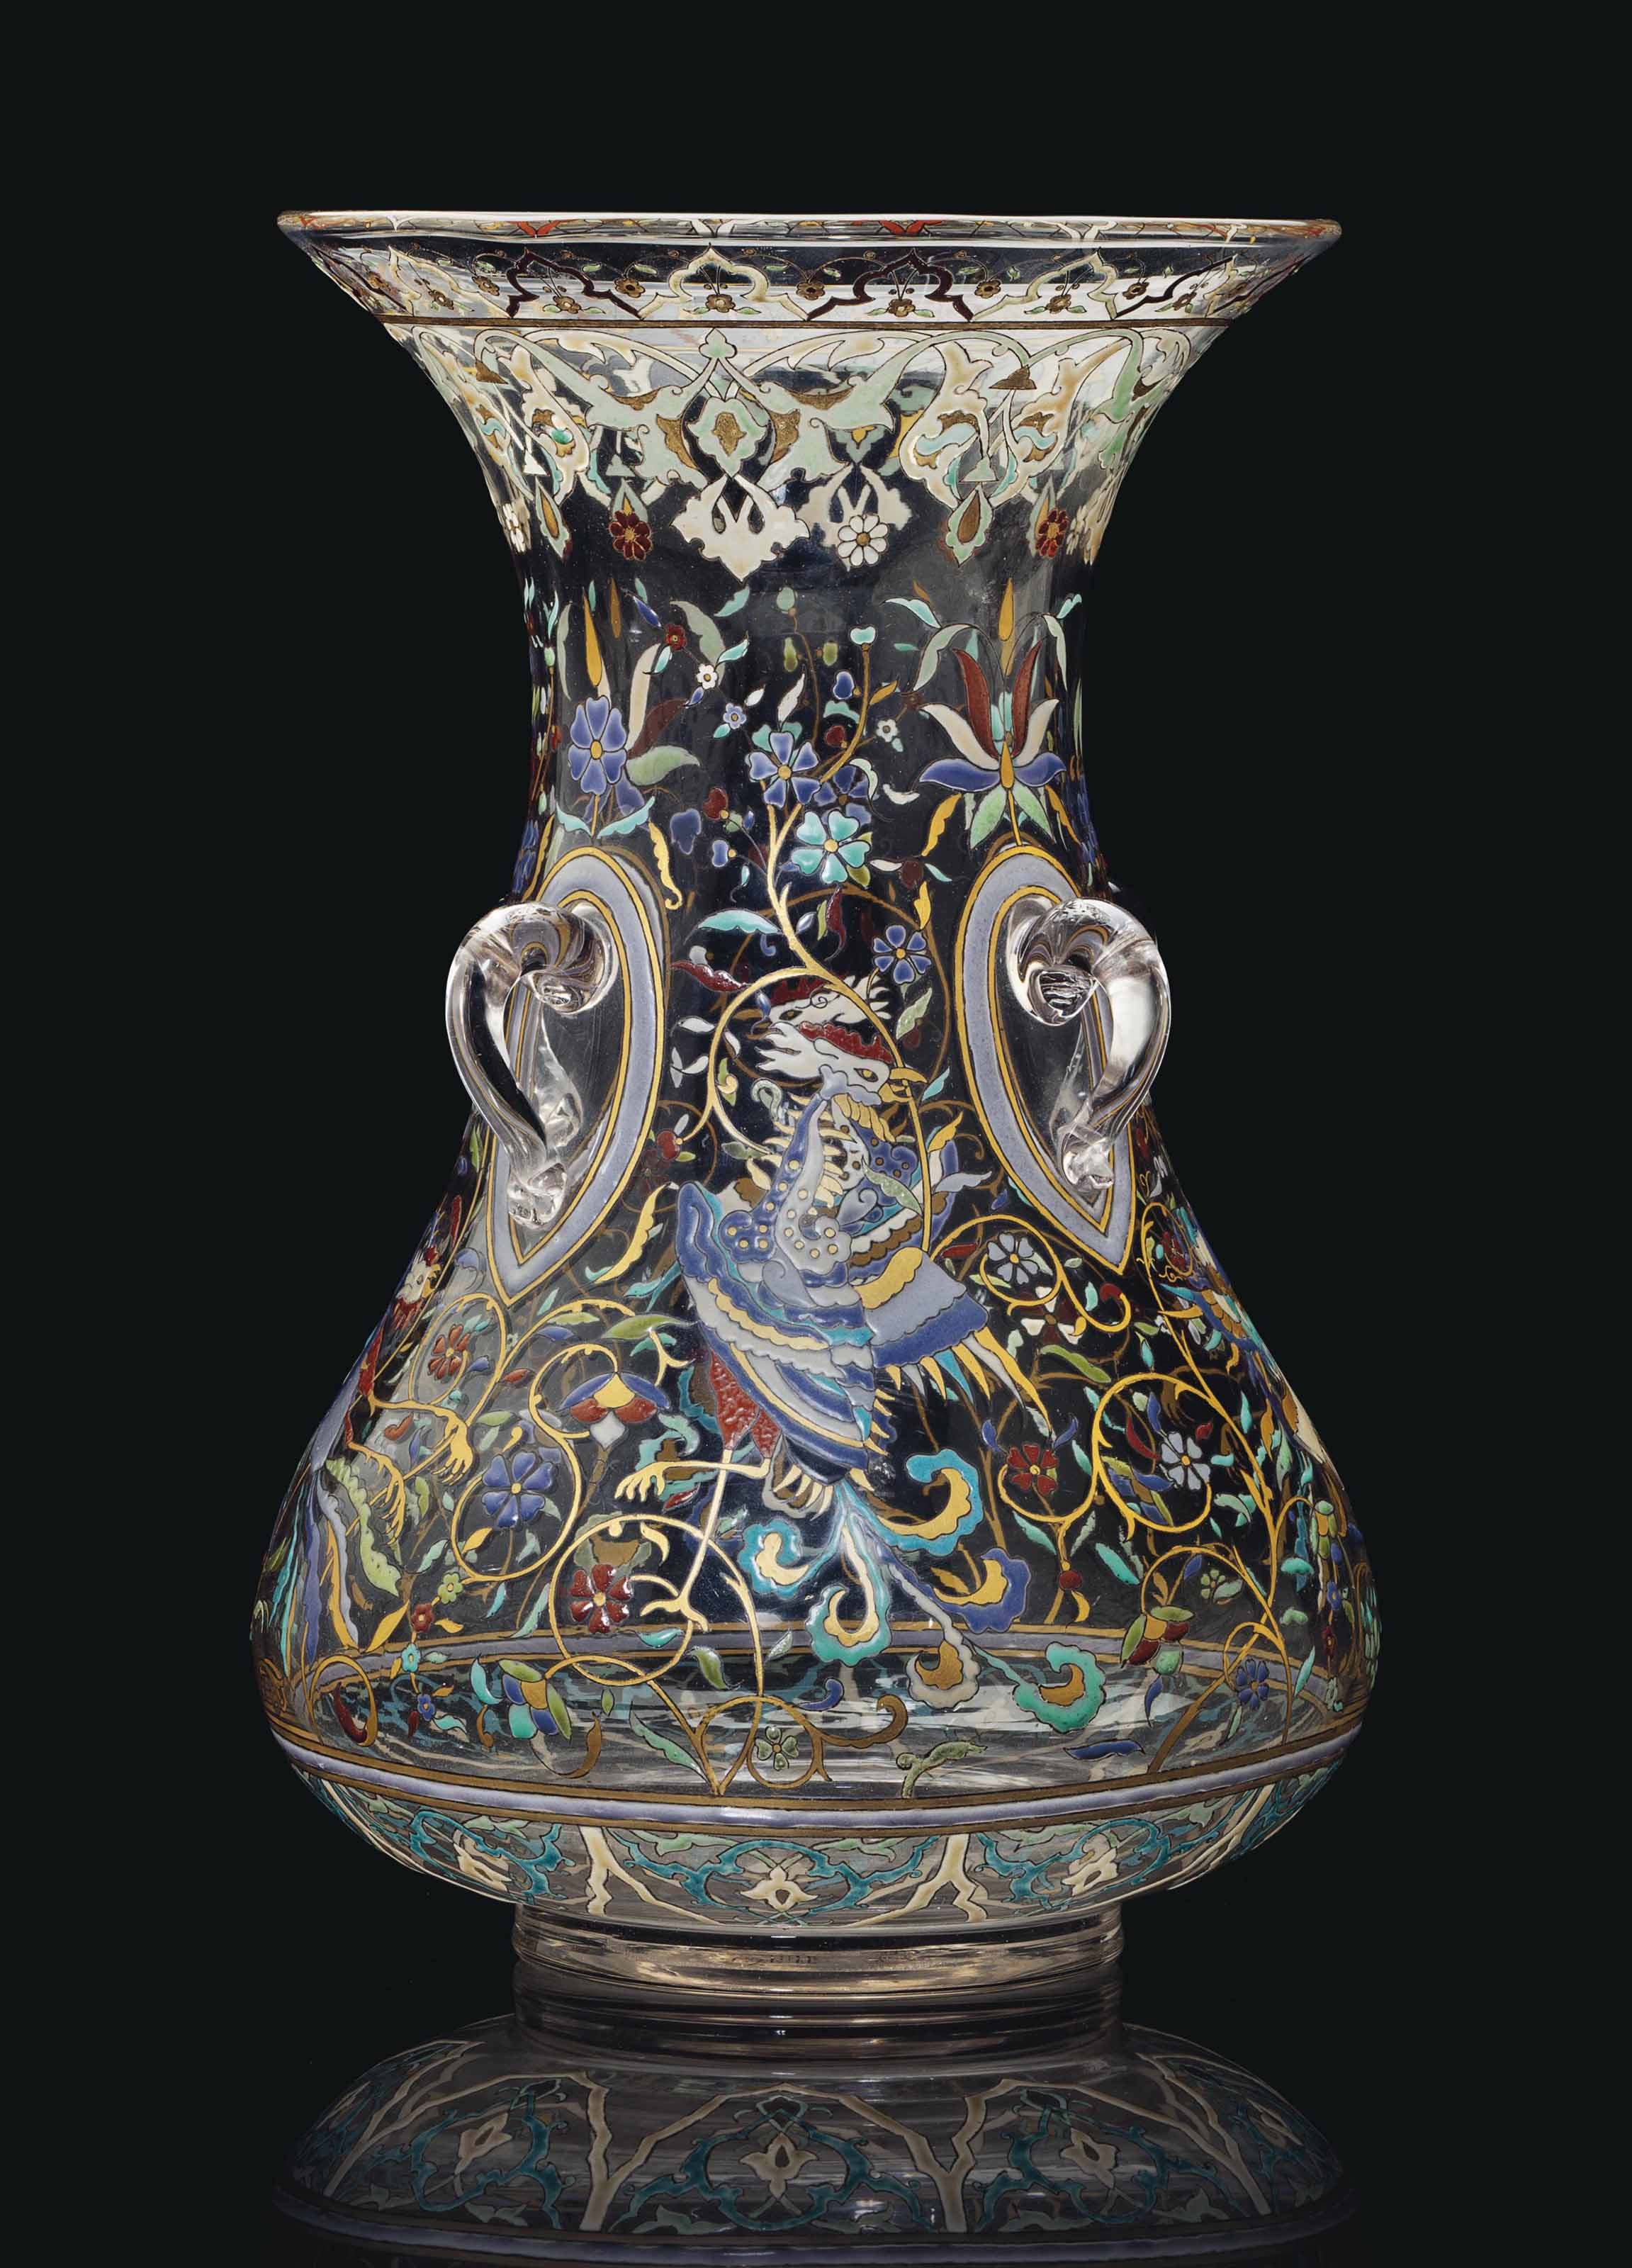 A FRENCH ENAMELED CLEAR GLASS